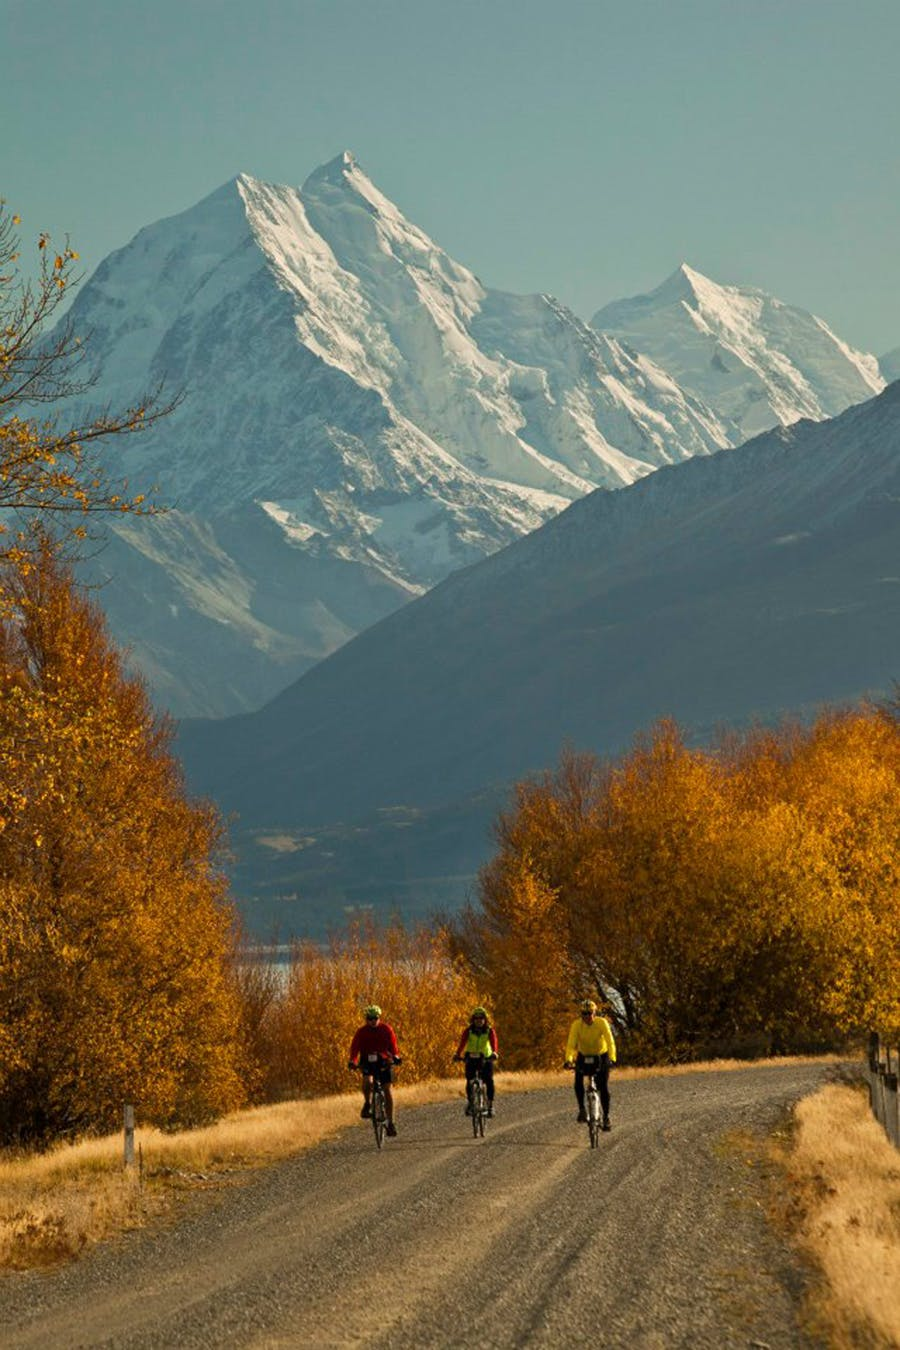 Ride in the shadow of Aoraki/Mt cook on the Alps 2 Ocean Cycle Trail